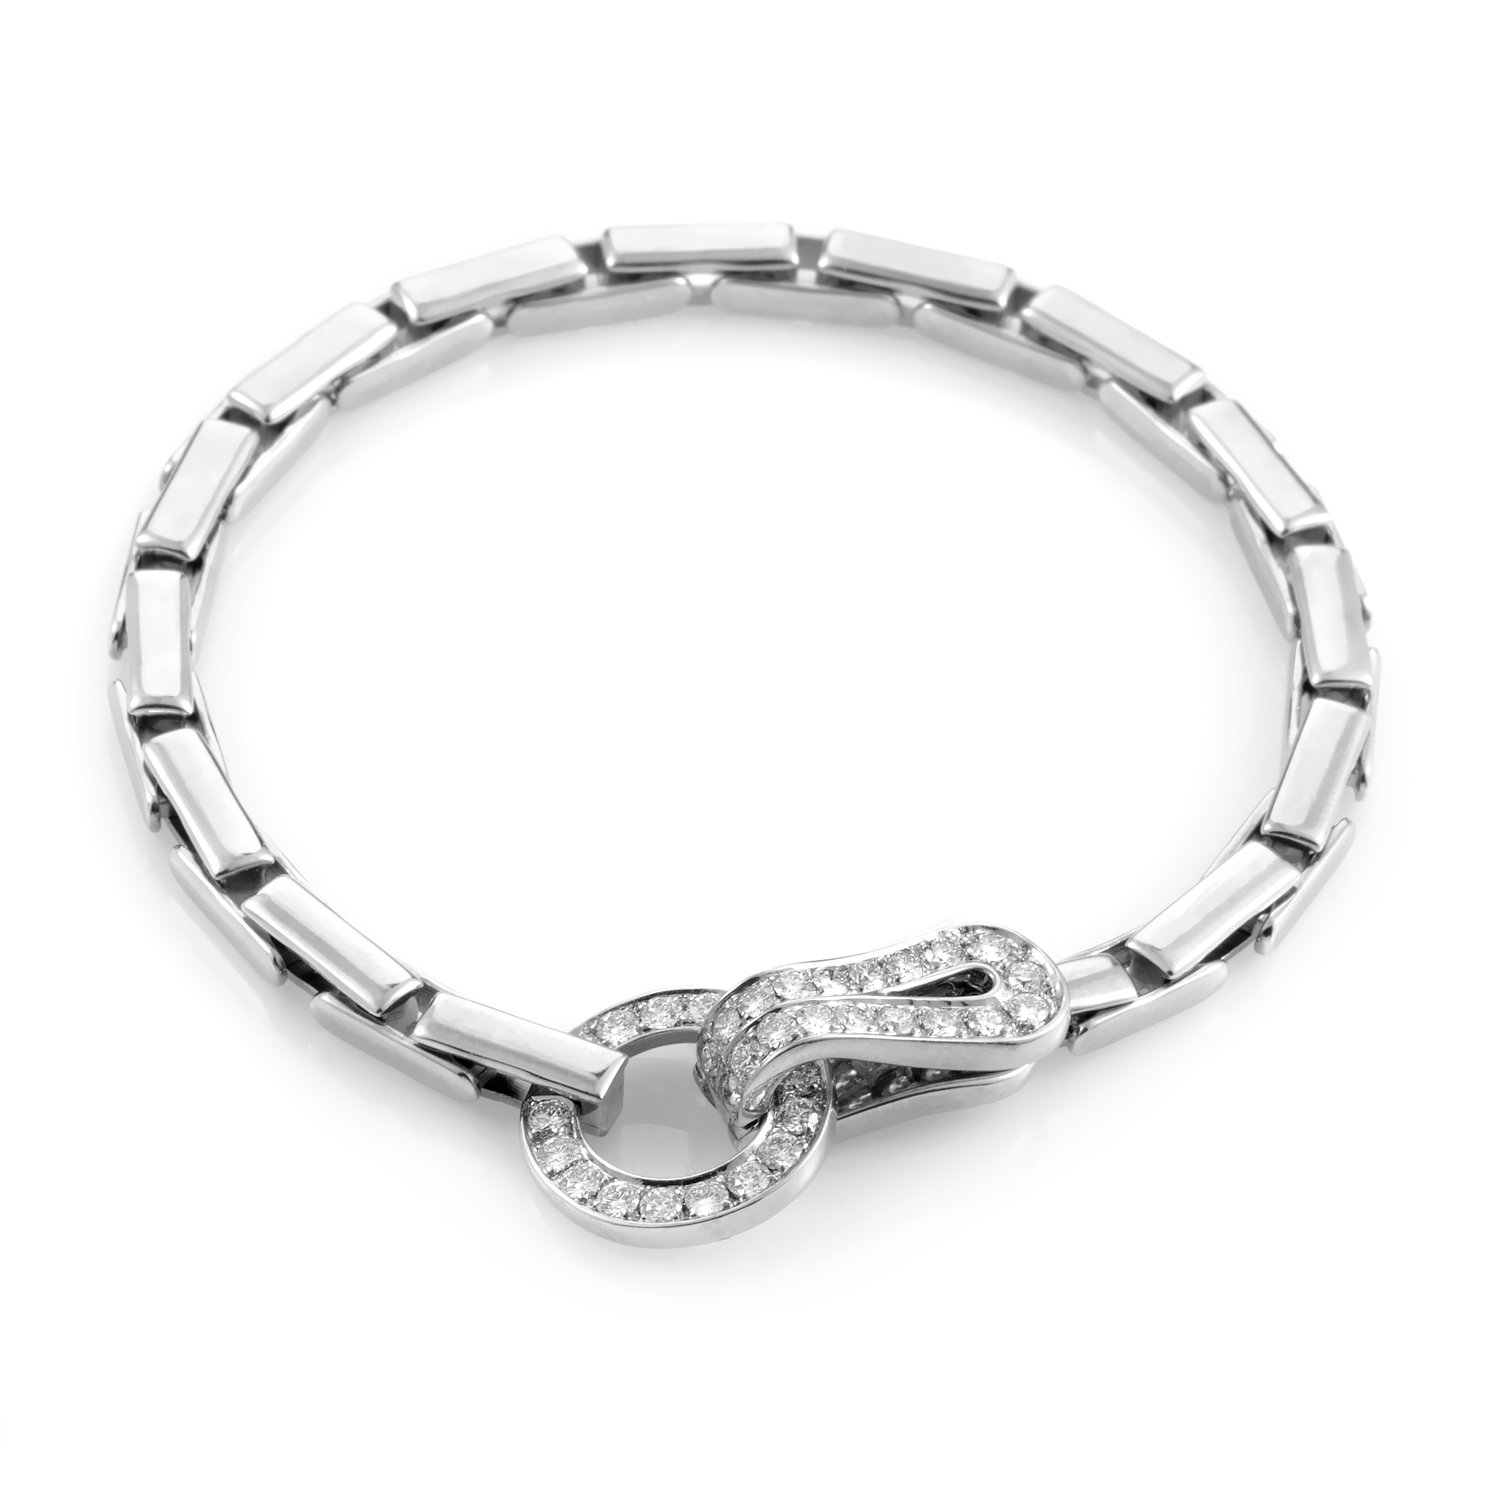 Cartier Agrafe 18K White Gold Diamond Hook Bracelet